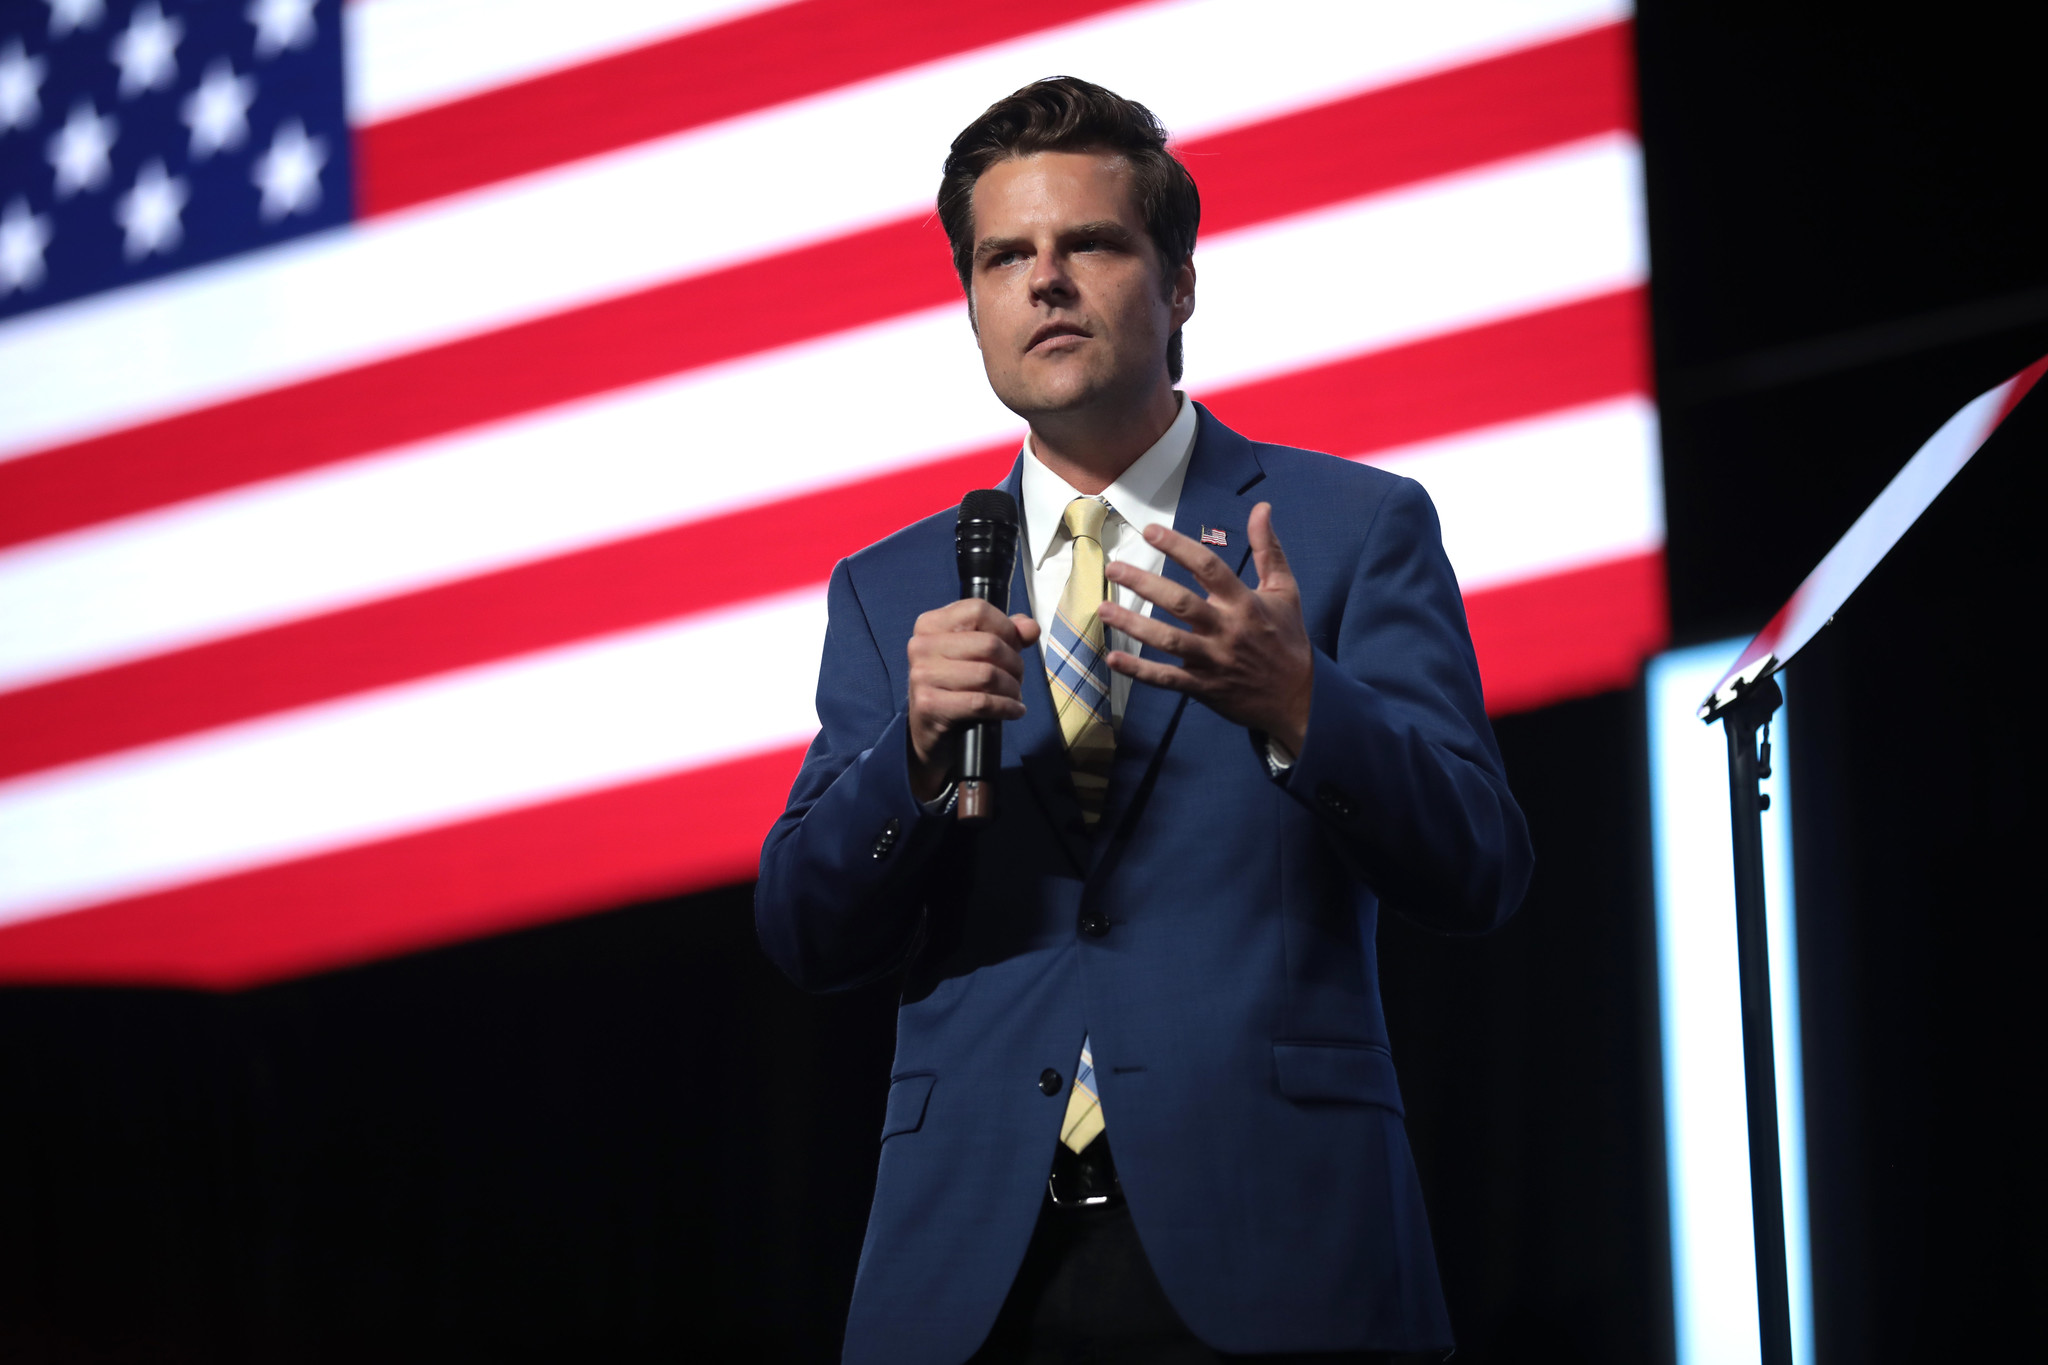 Matt Gaetz wondering if he could have used Dandelions to pay for underage sex